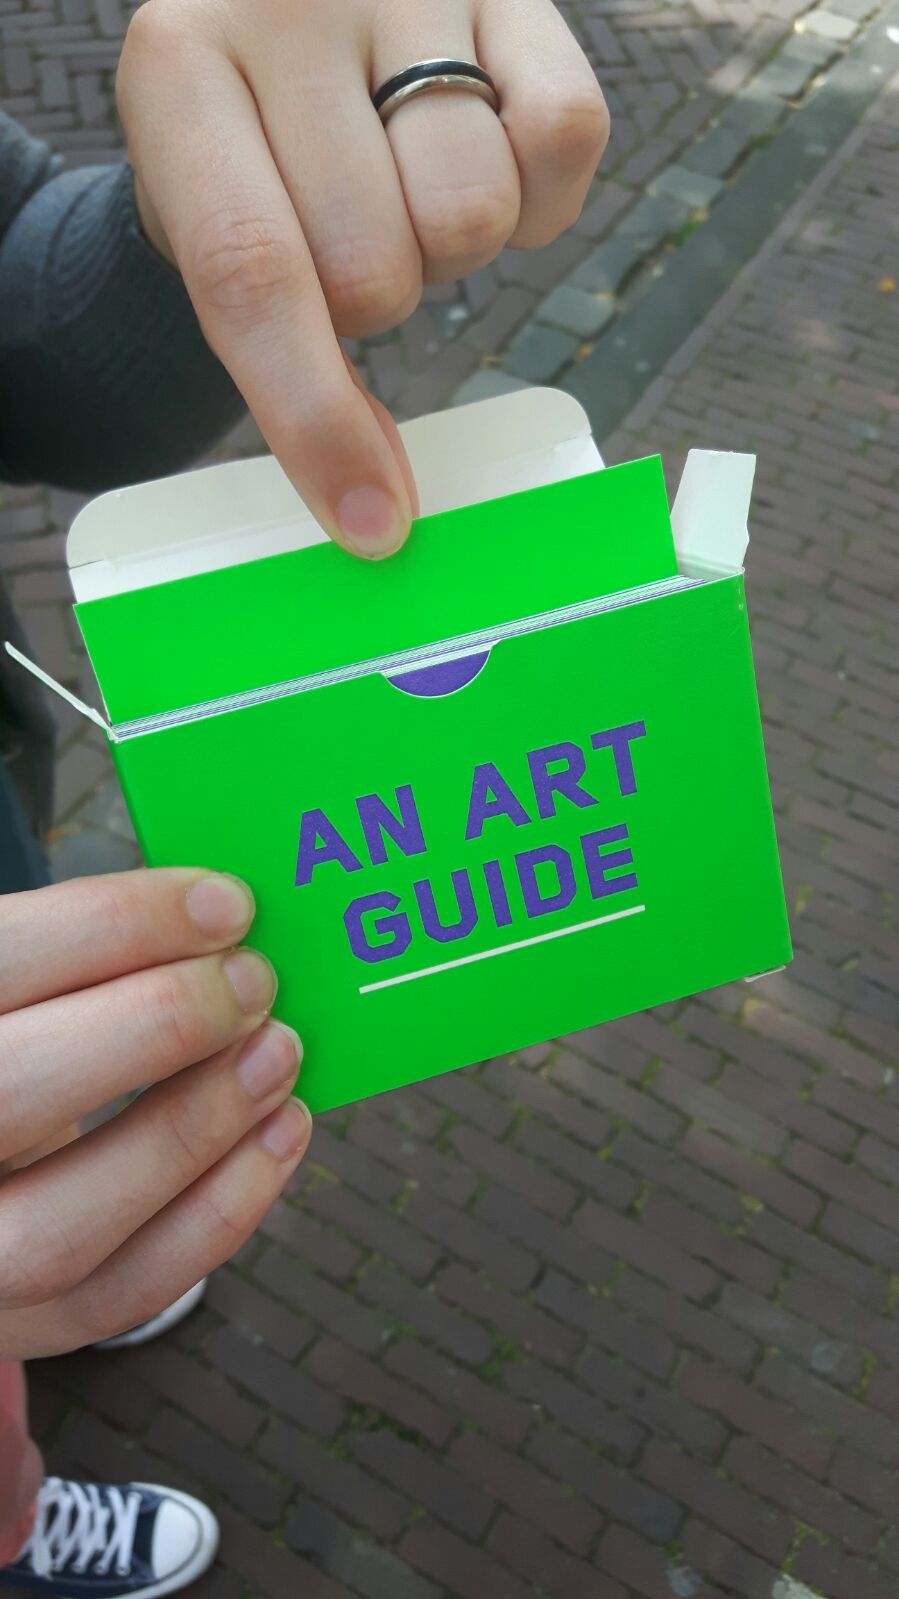 Anywhere An Art Guide - De Museumpodcast